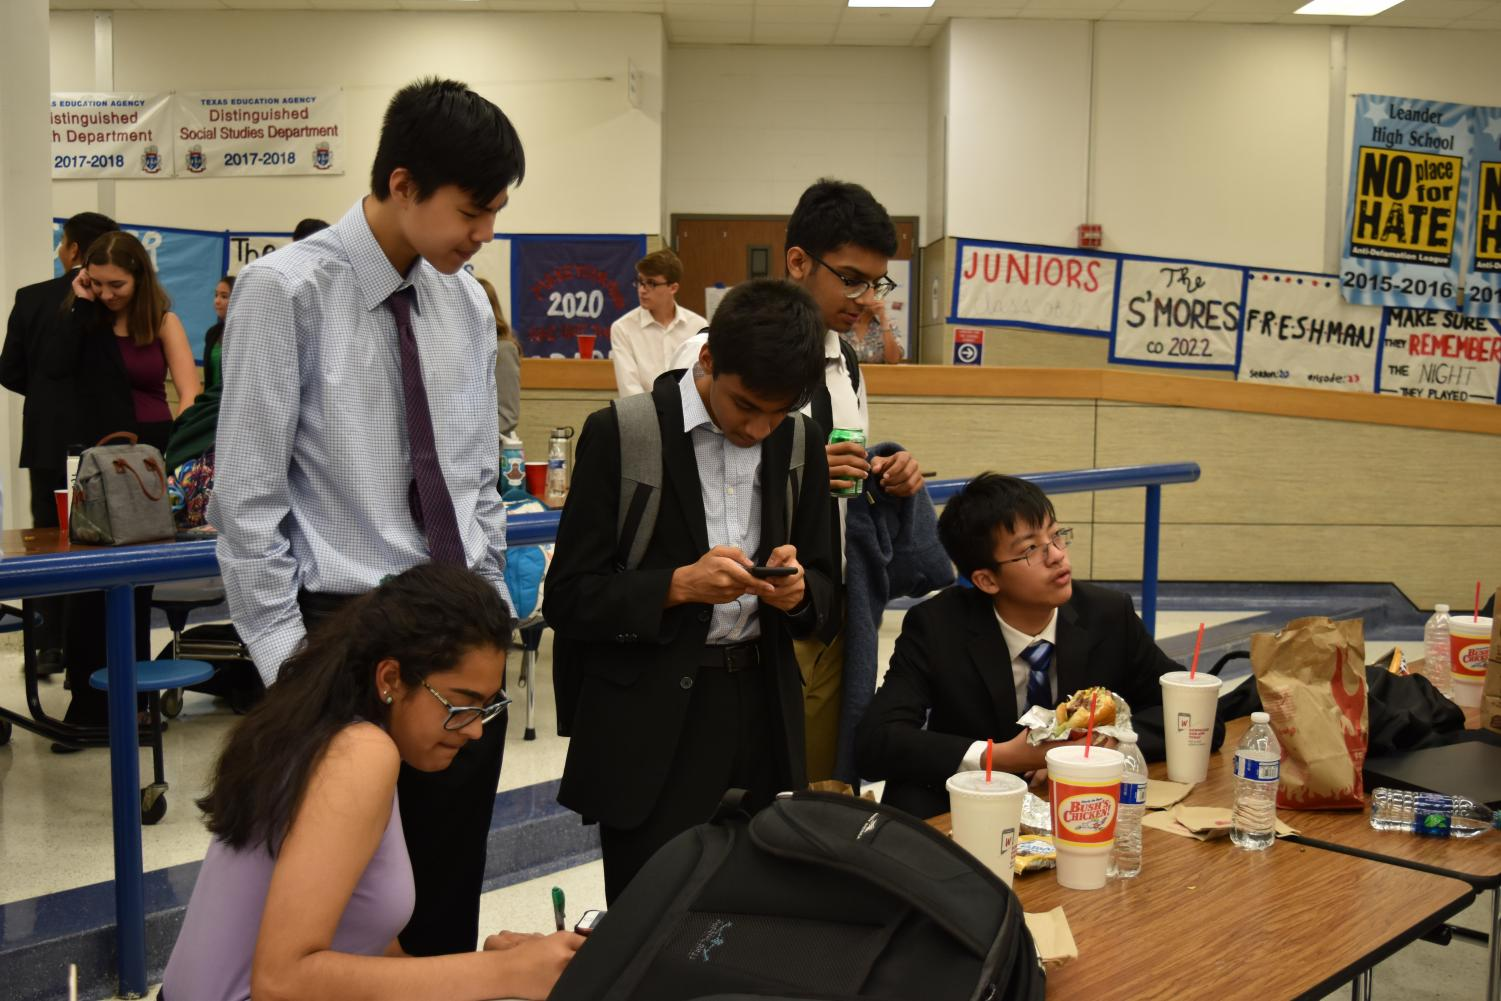 While+waiting+for+their+results%2C+debaters+discuss+the+tournament.+Photo+courtesy+of+WHS+Speech+and+Debate.